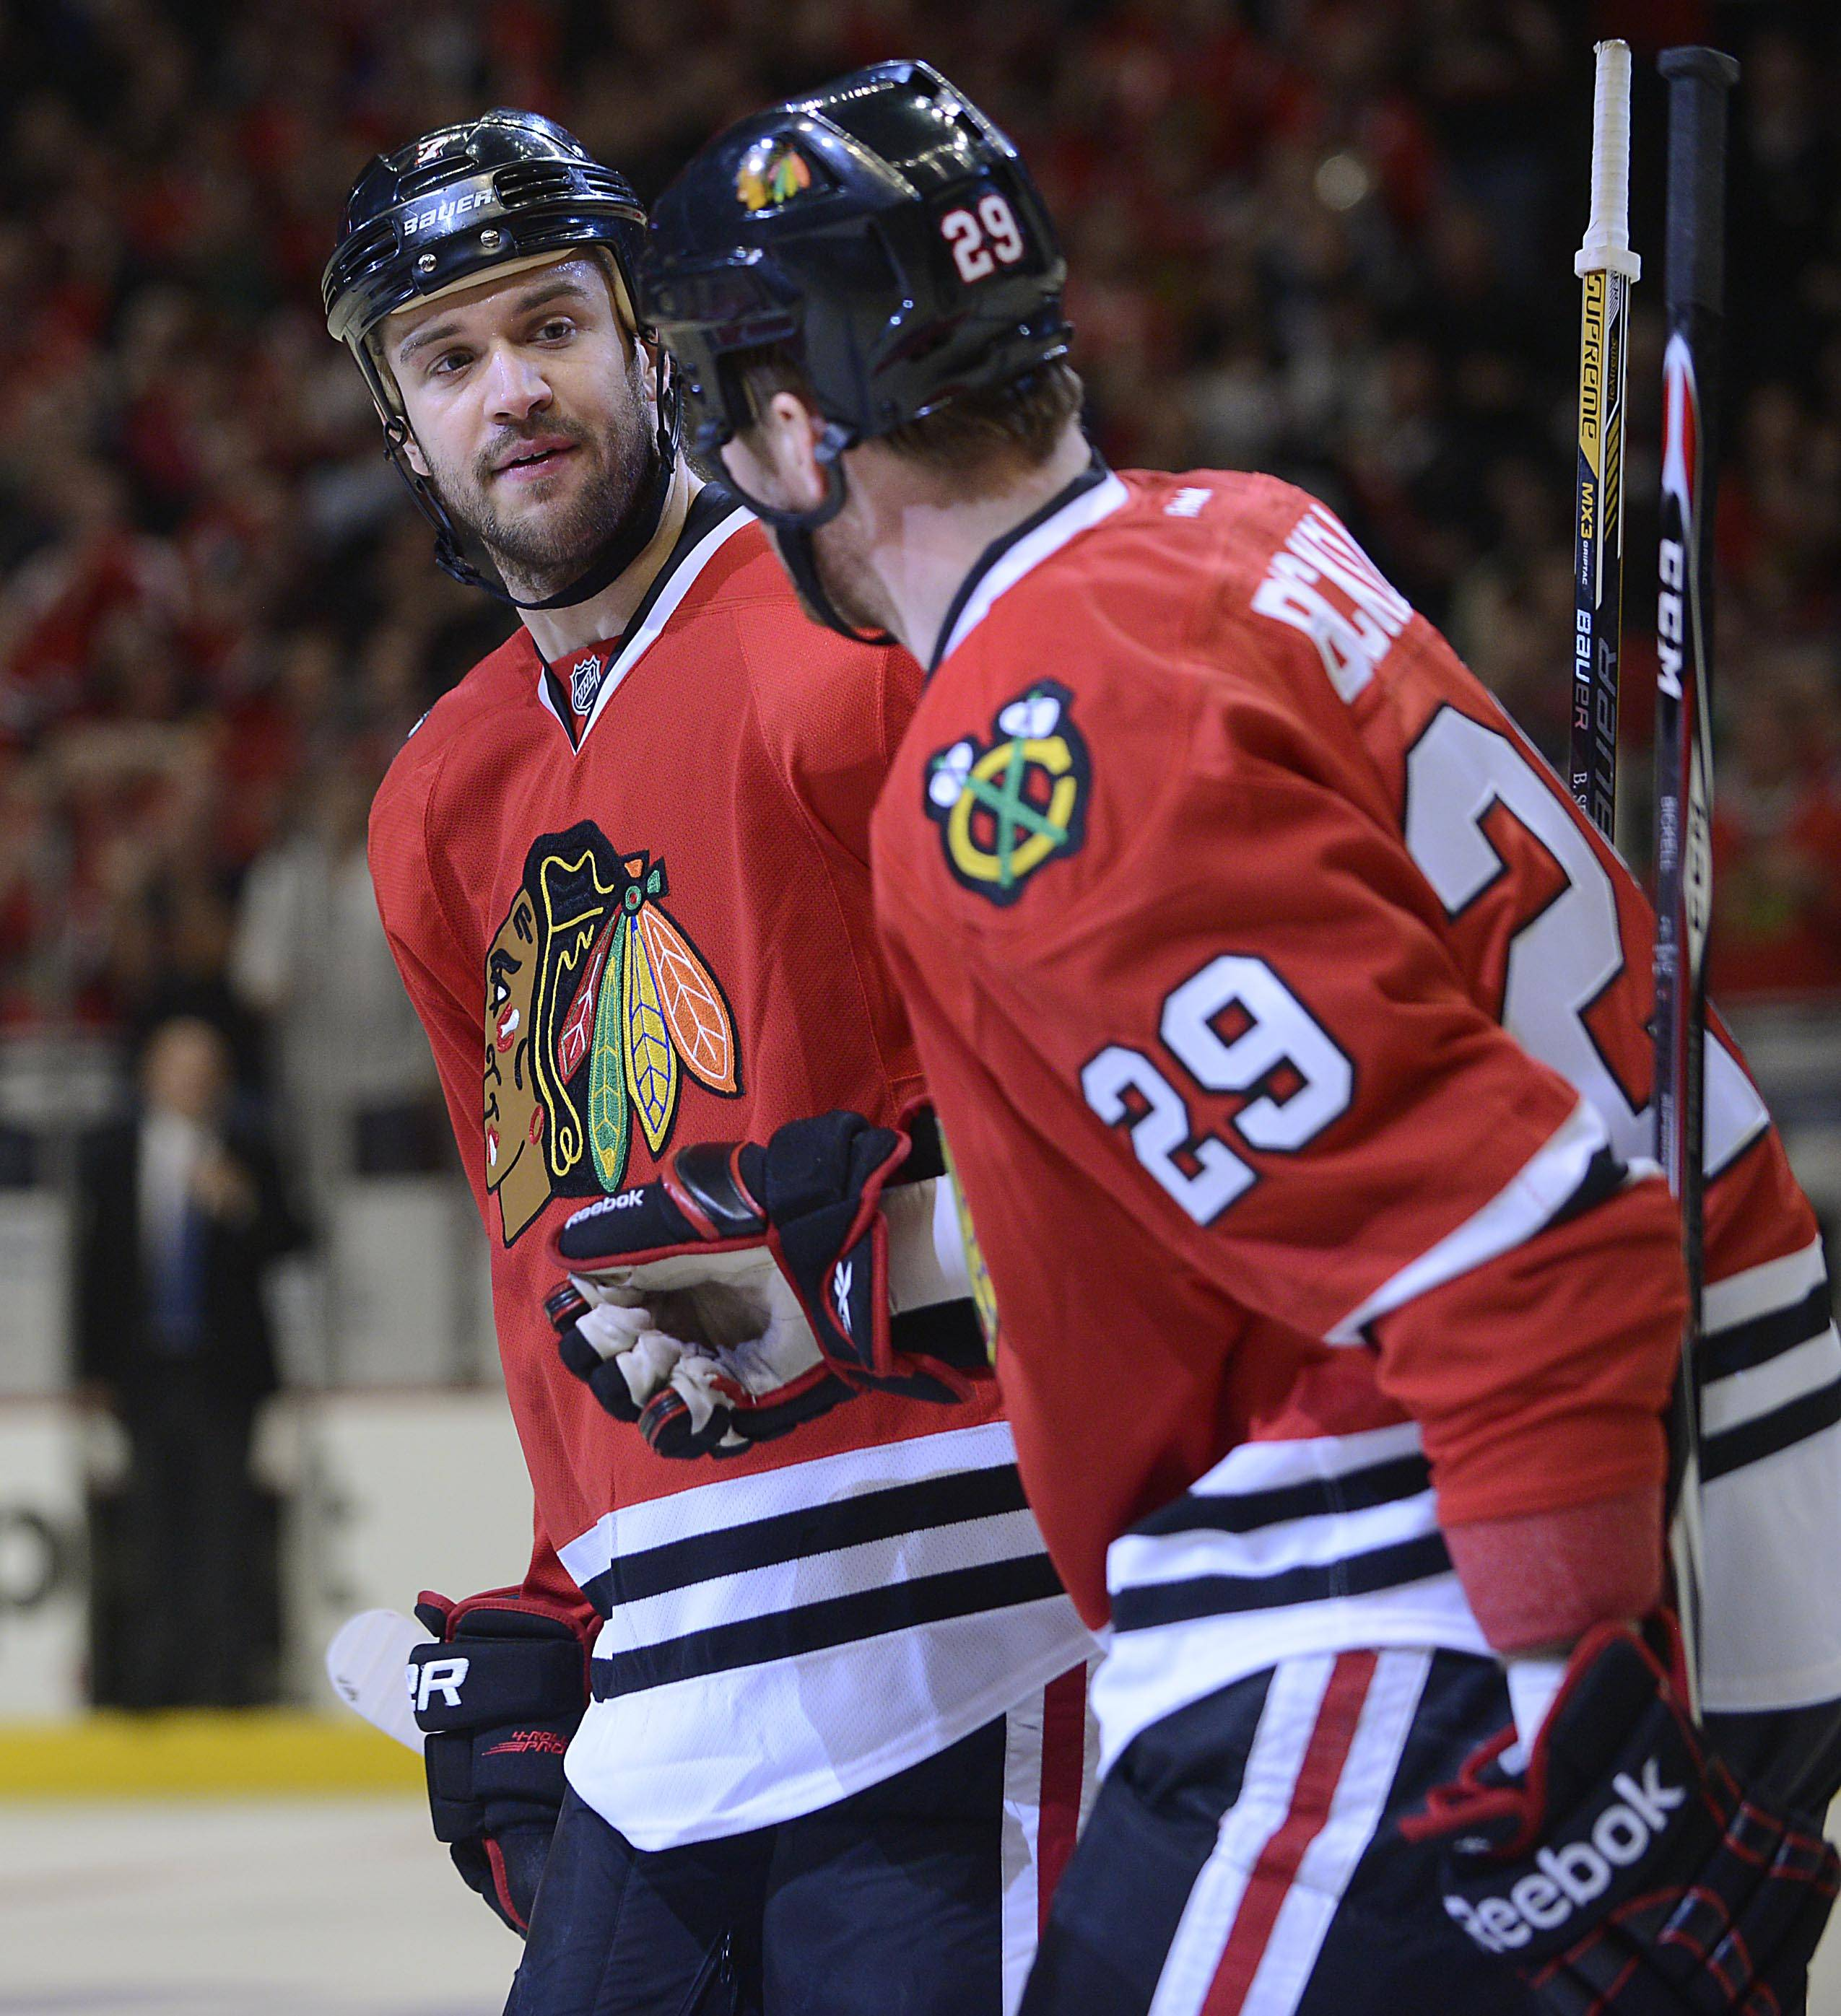 Chicago Blackhawks defenseman Duncan Keith smiles with teammate Bryan Bickell after Bickell's first-period goal against the St. Louis Blues Sunday in Game 6 of the NHL first round playoffs at the United Center in Chicago.